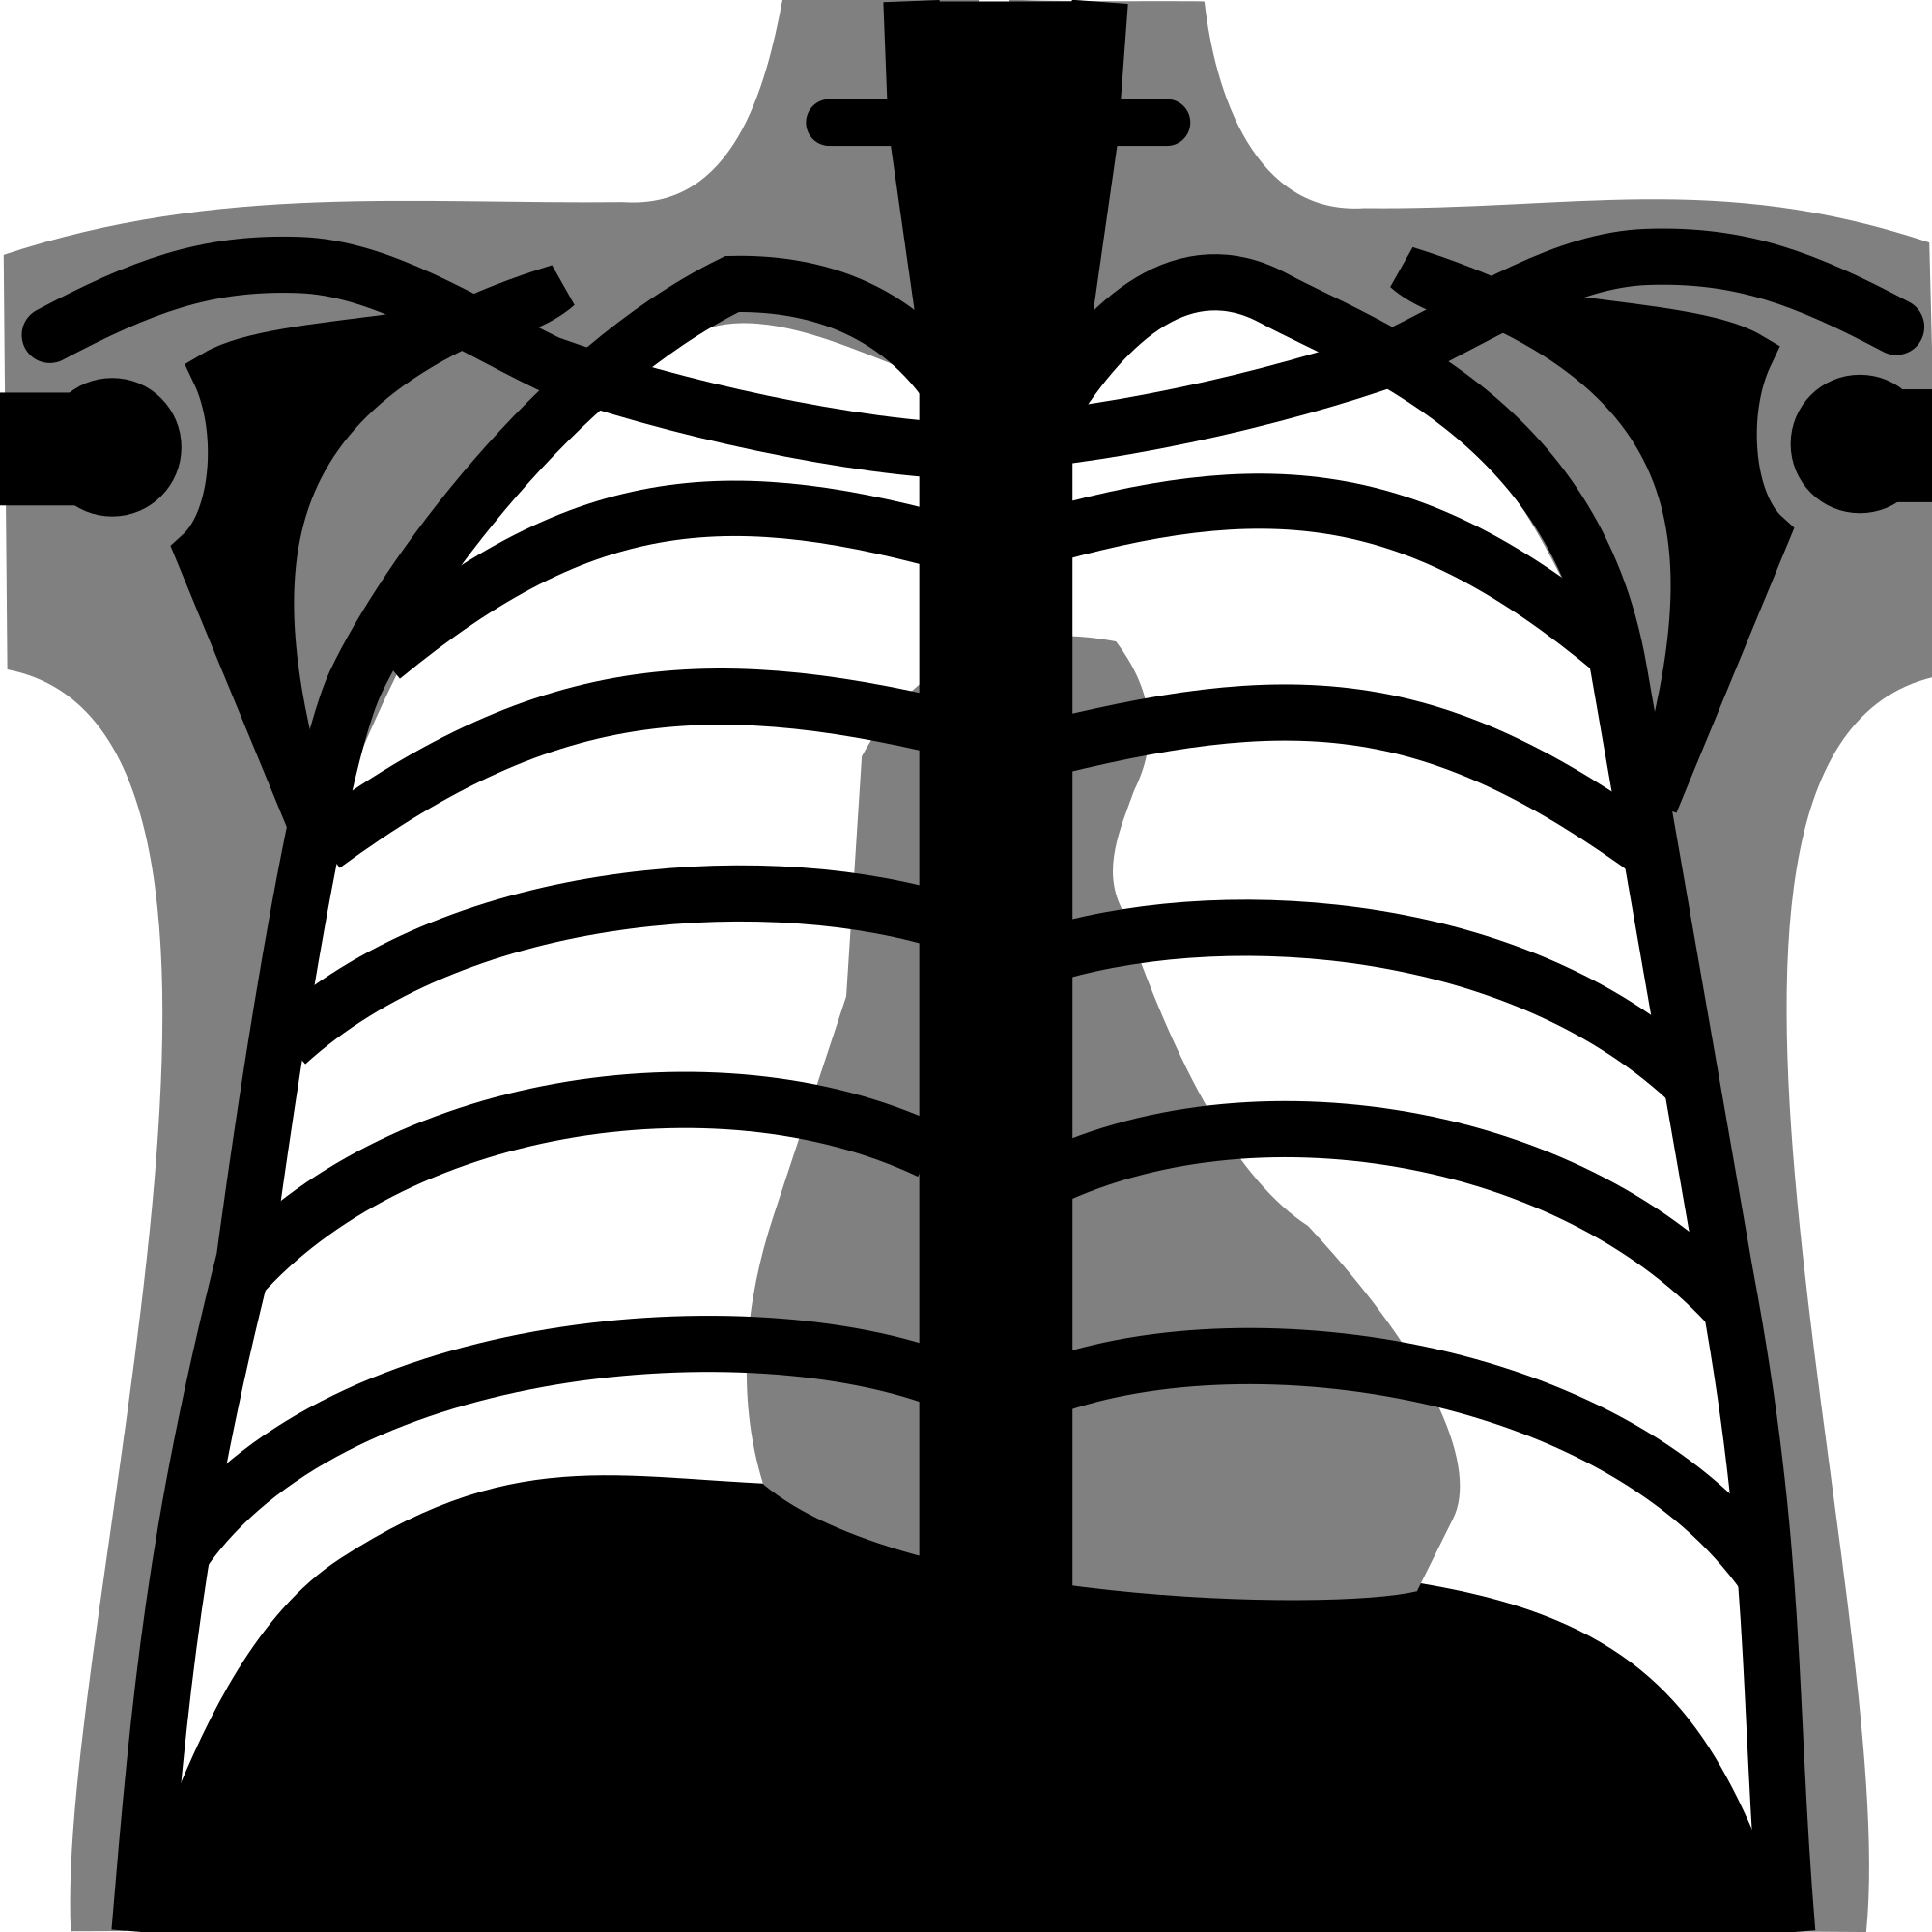 royalty free download File chest icon svg. X rays clipart